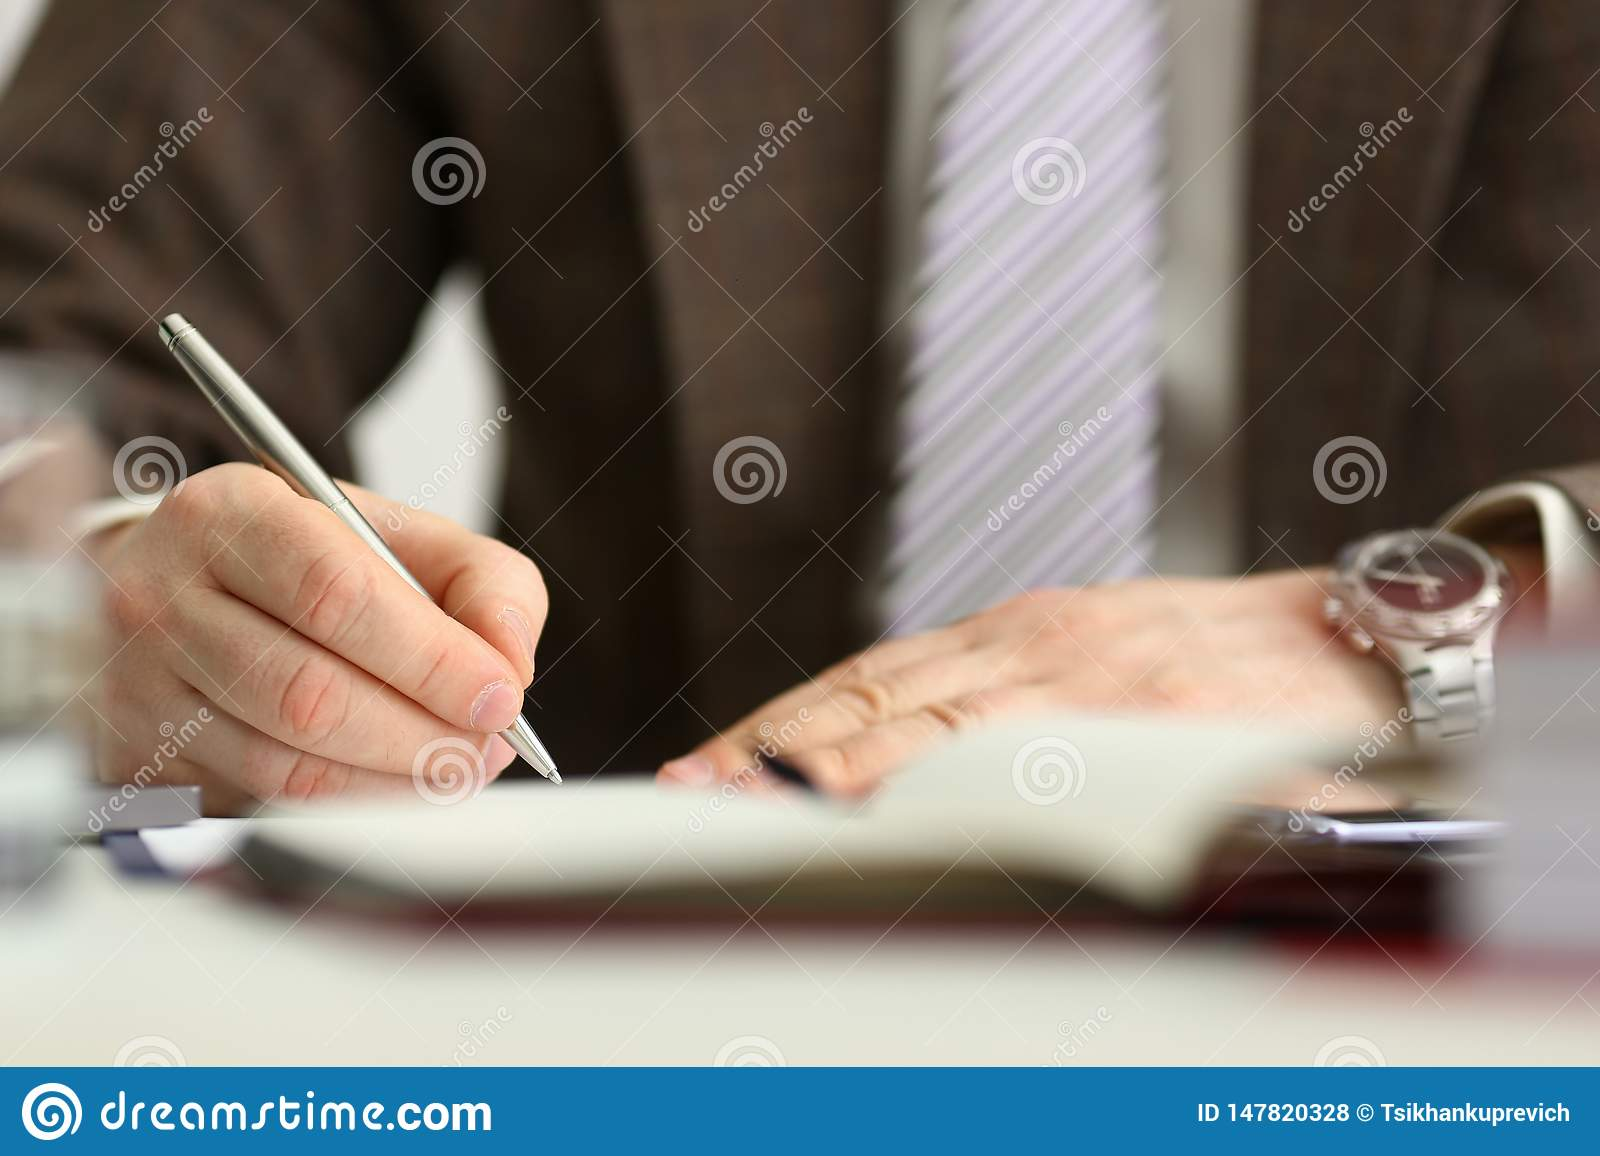 Male arm in suit and tie hold silver pen